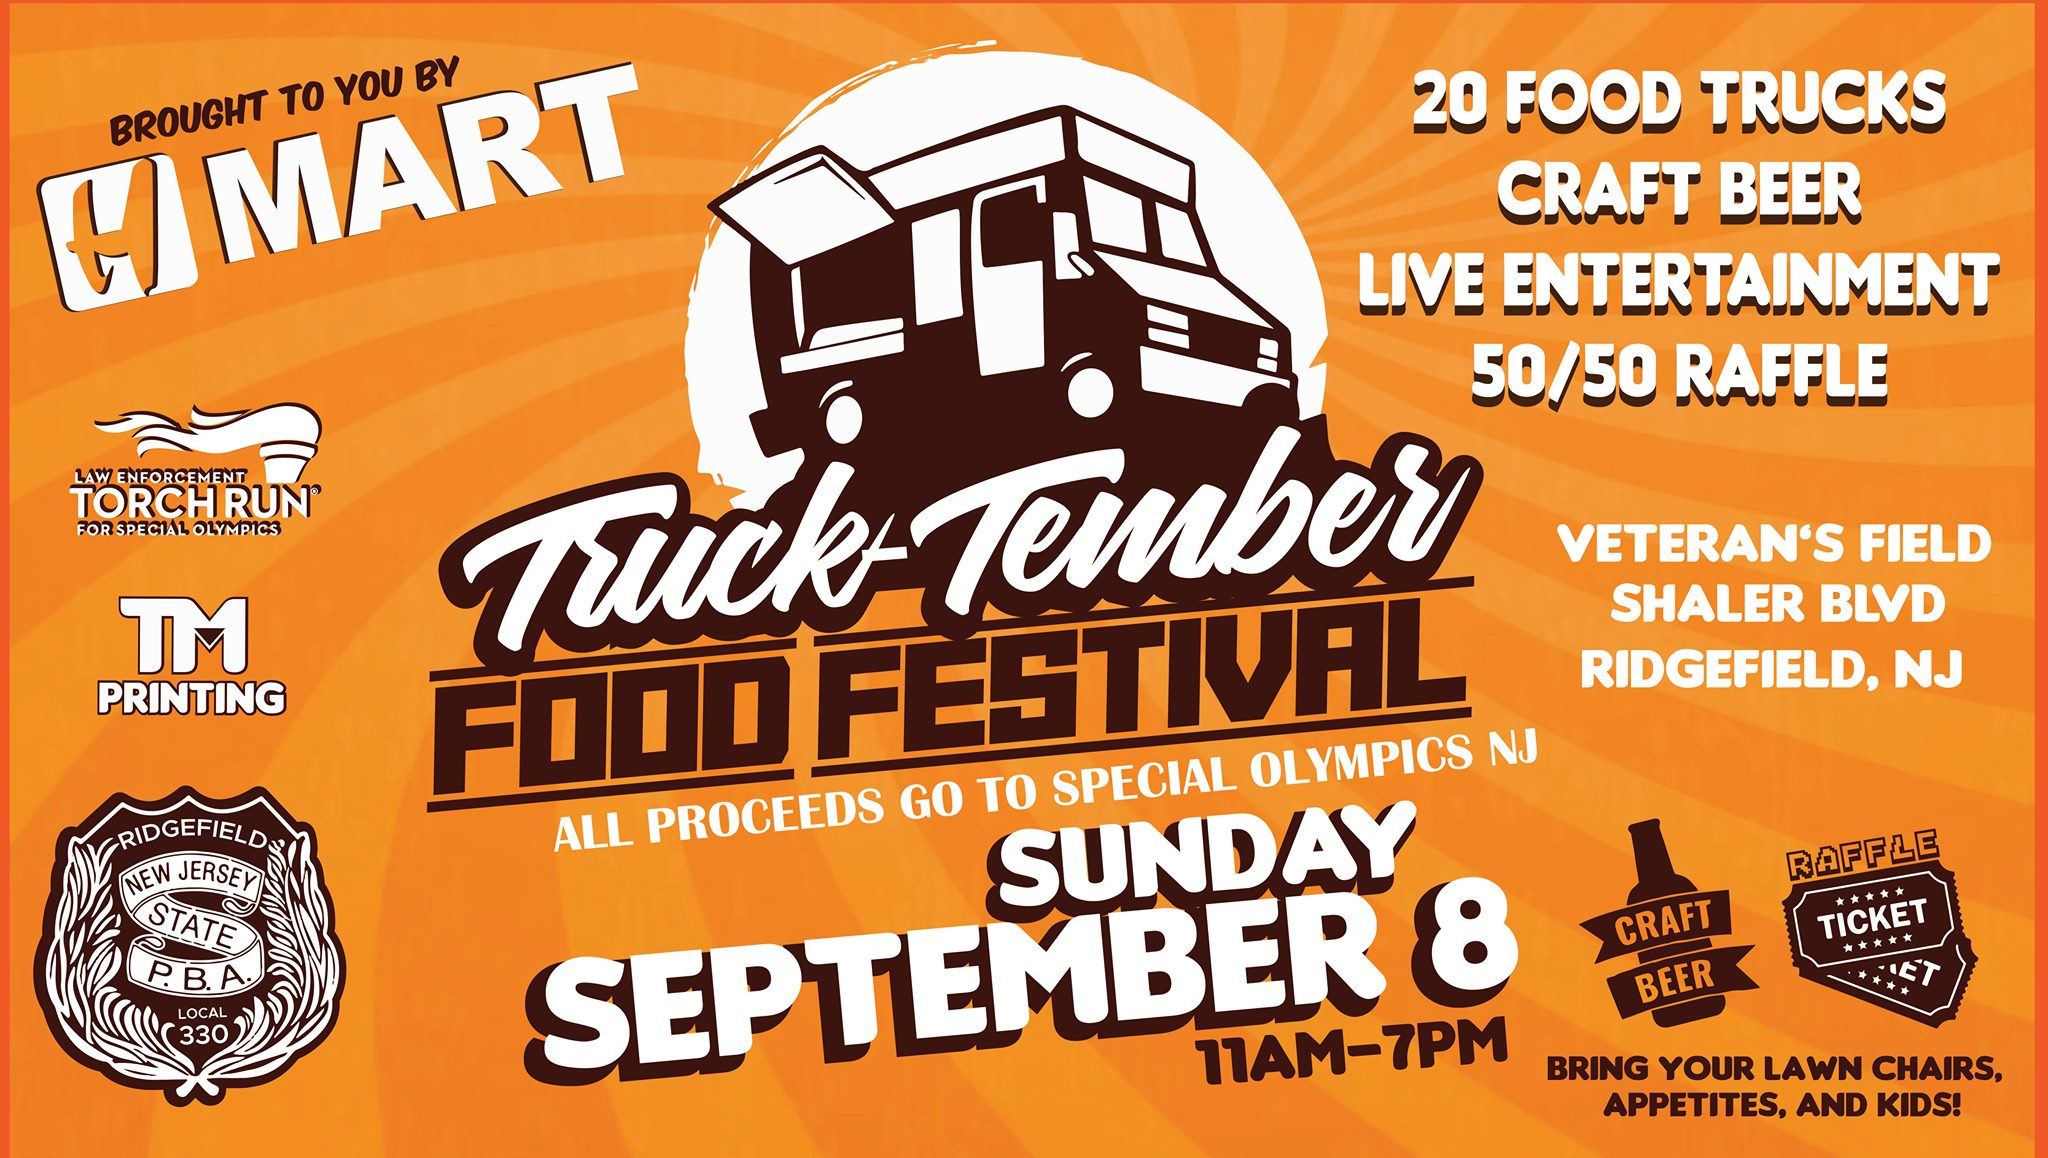 New Jersey Food Truck Events